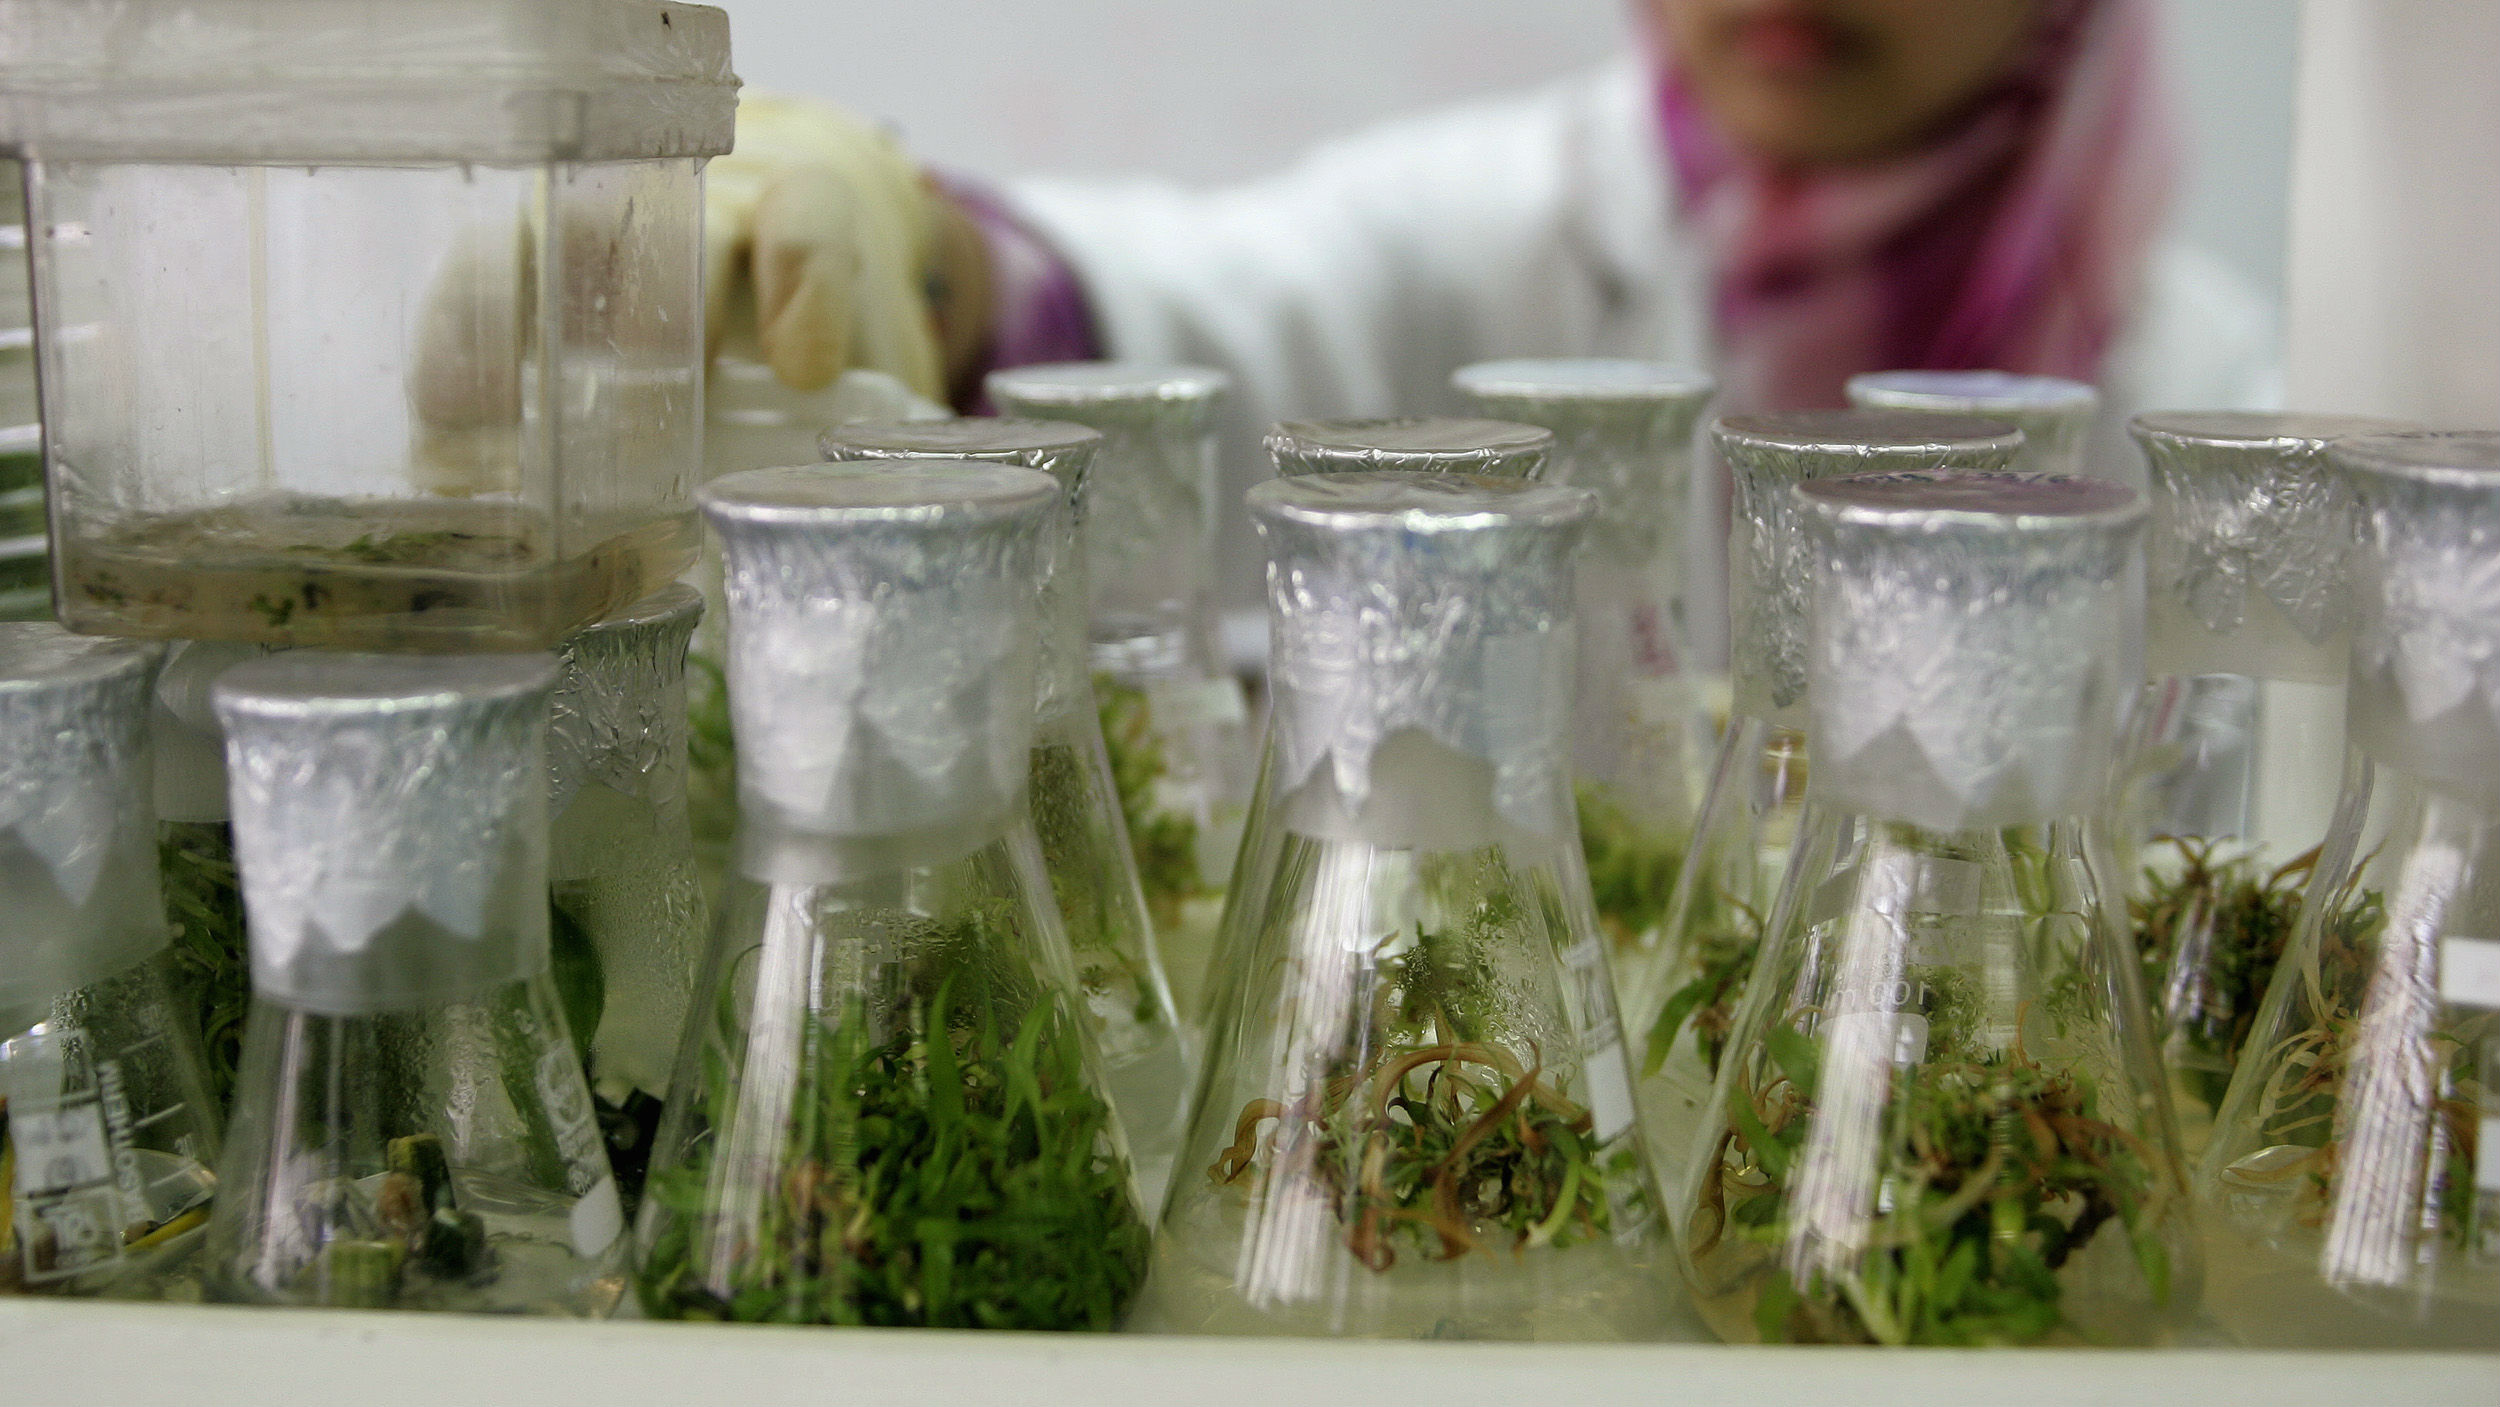 Glass beakers filled with a plant in a lab setting.